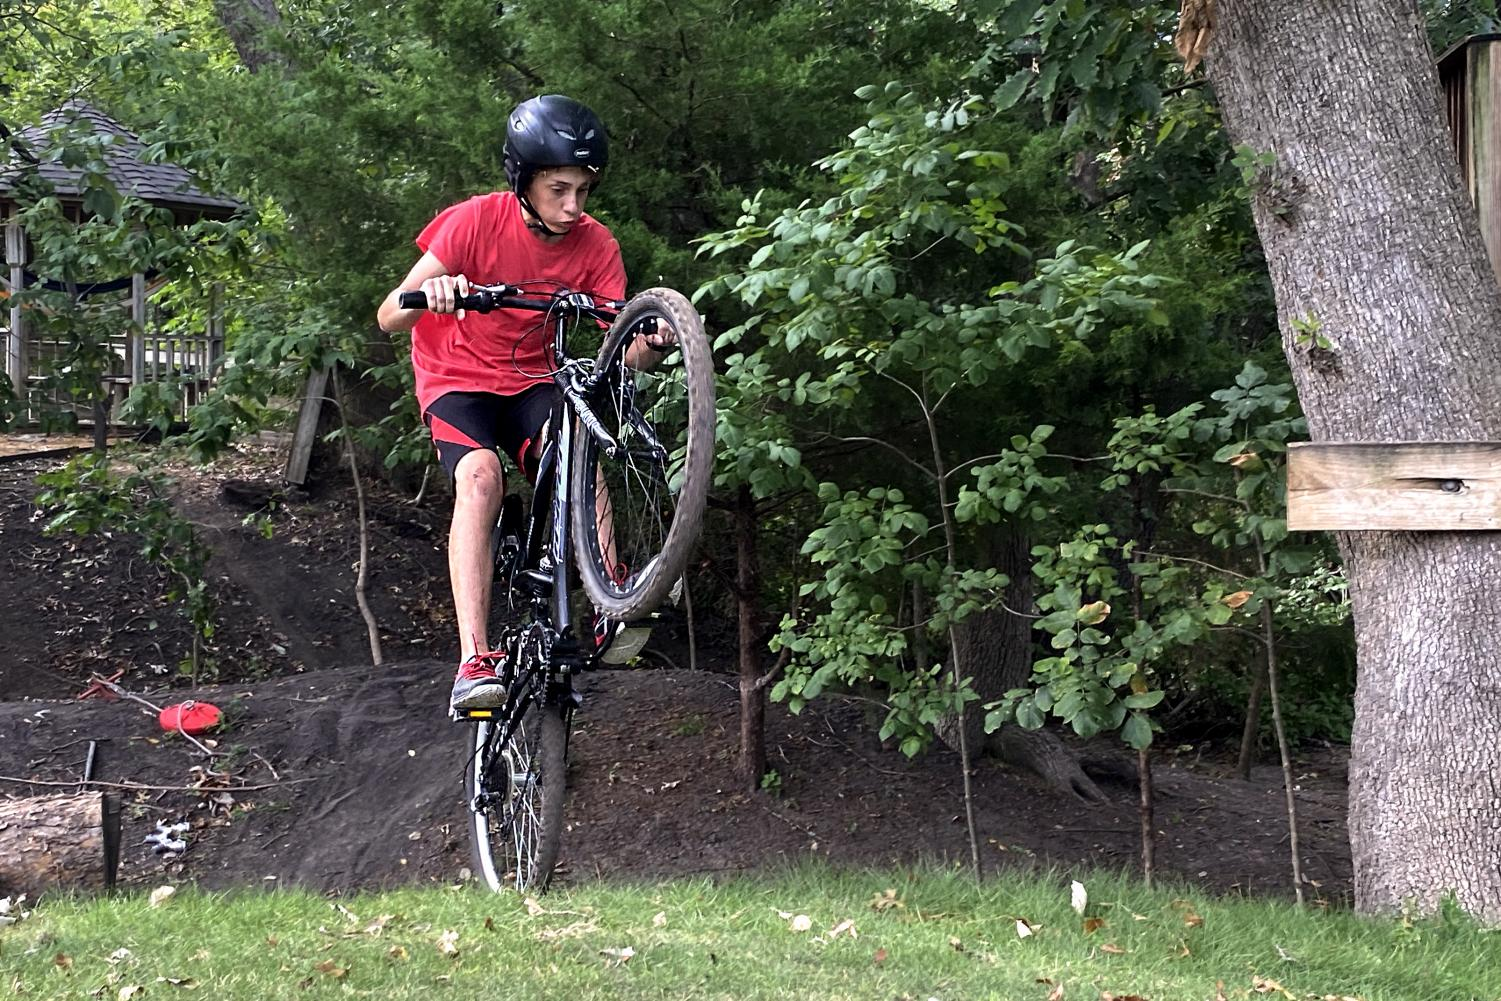 Sophomore Luke Farkas pops a wheelie after riding up a hill. It took Farkas about 50 hours to build the course.